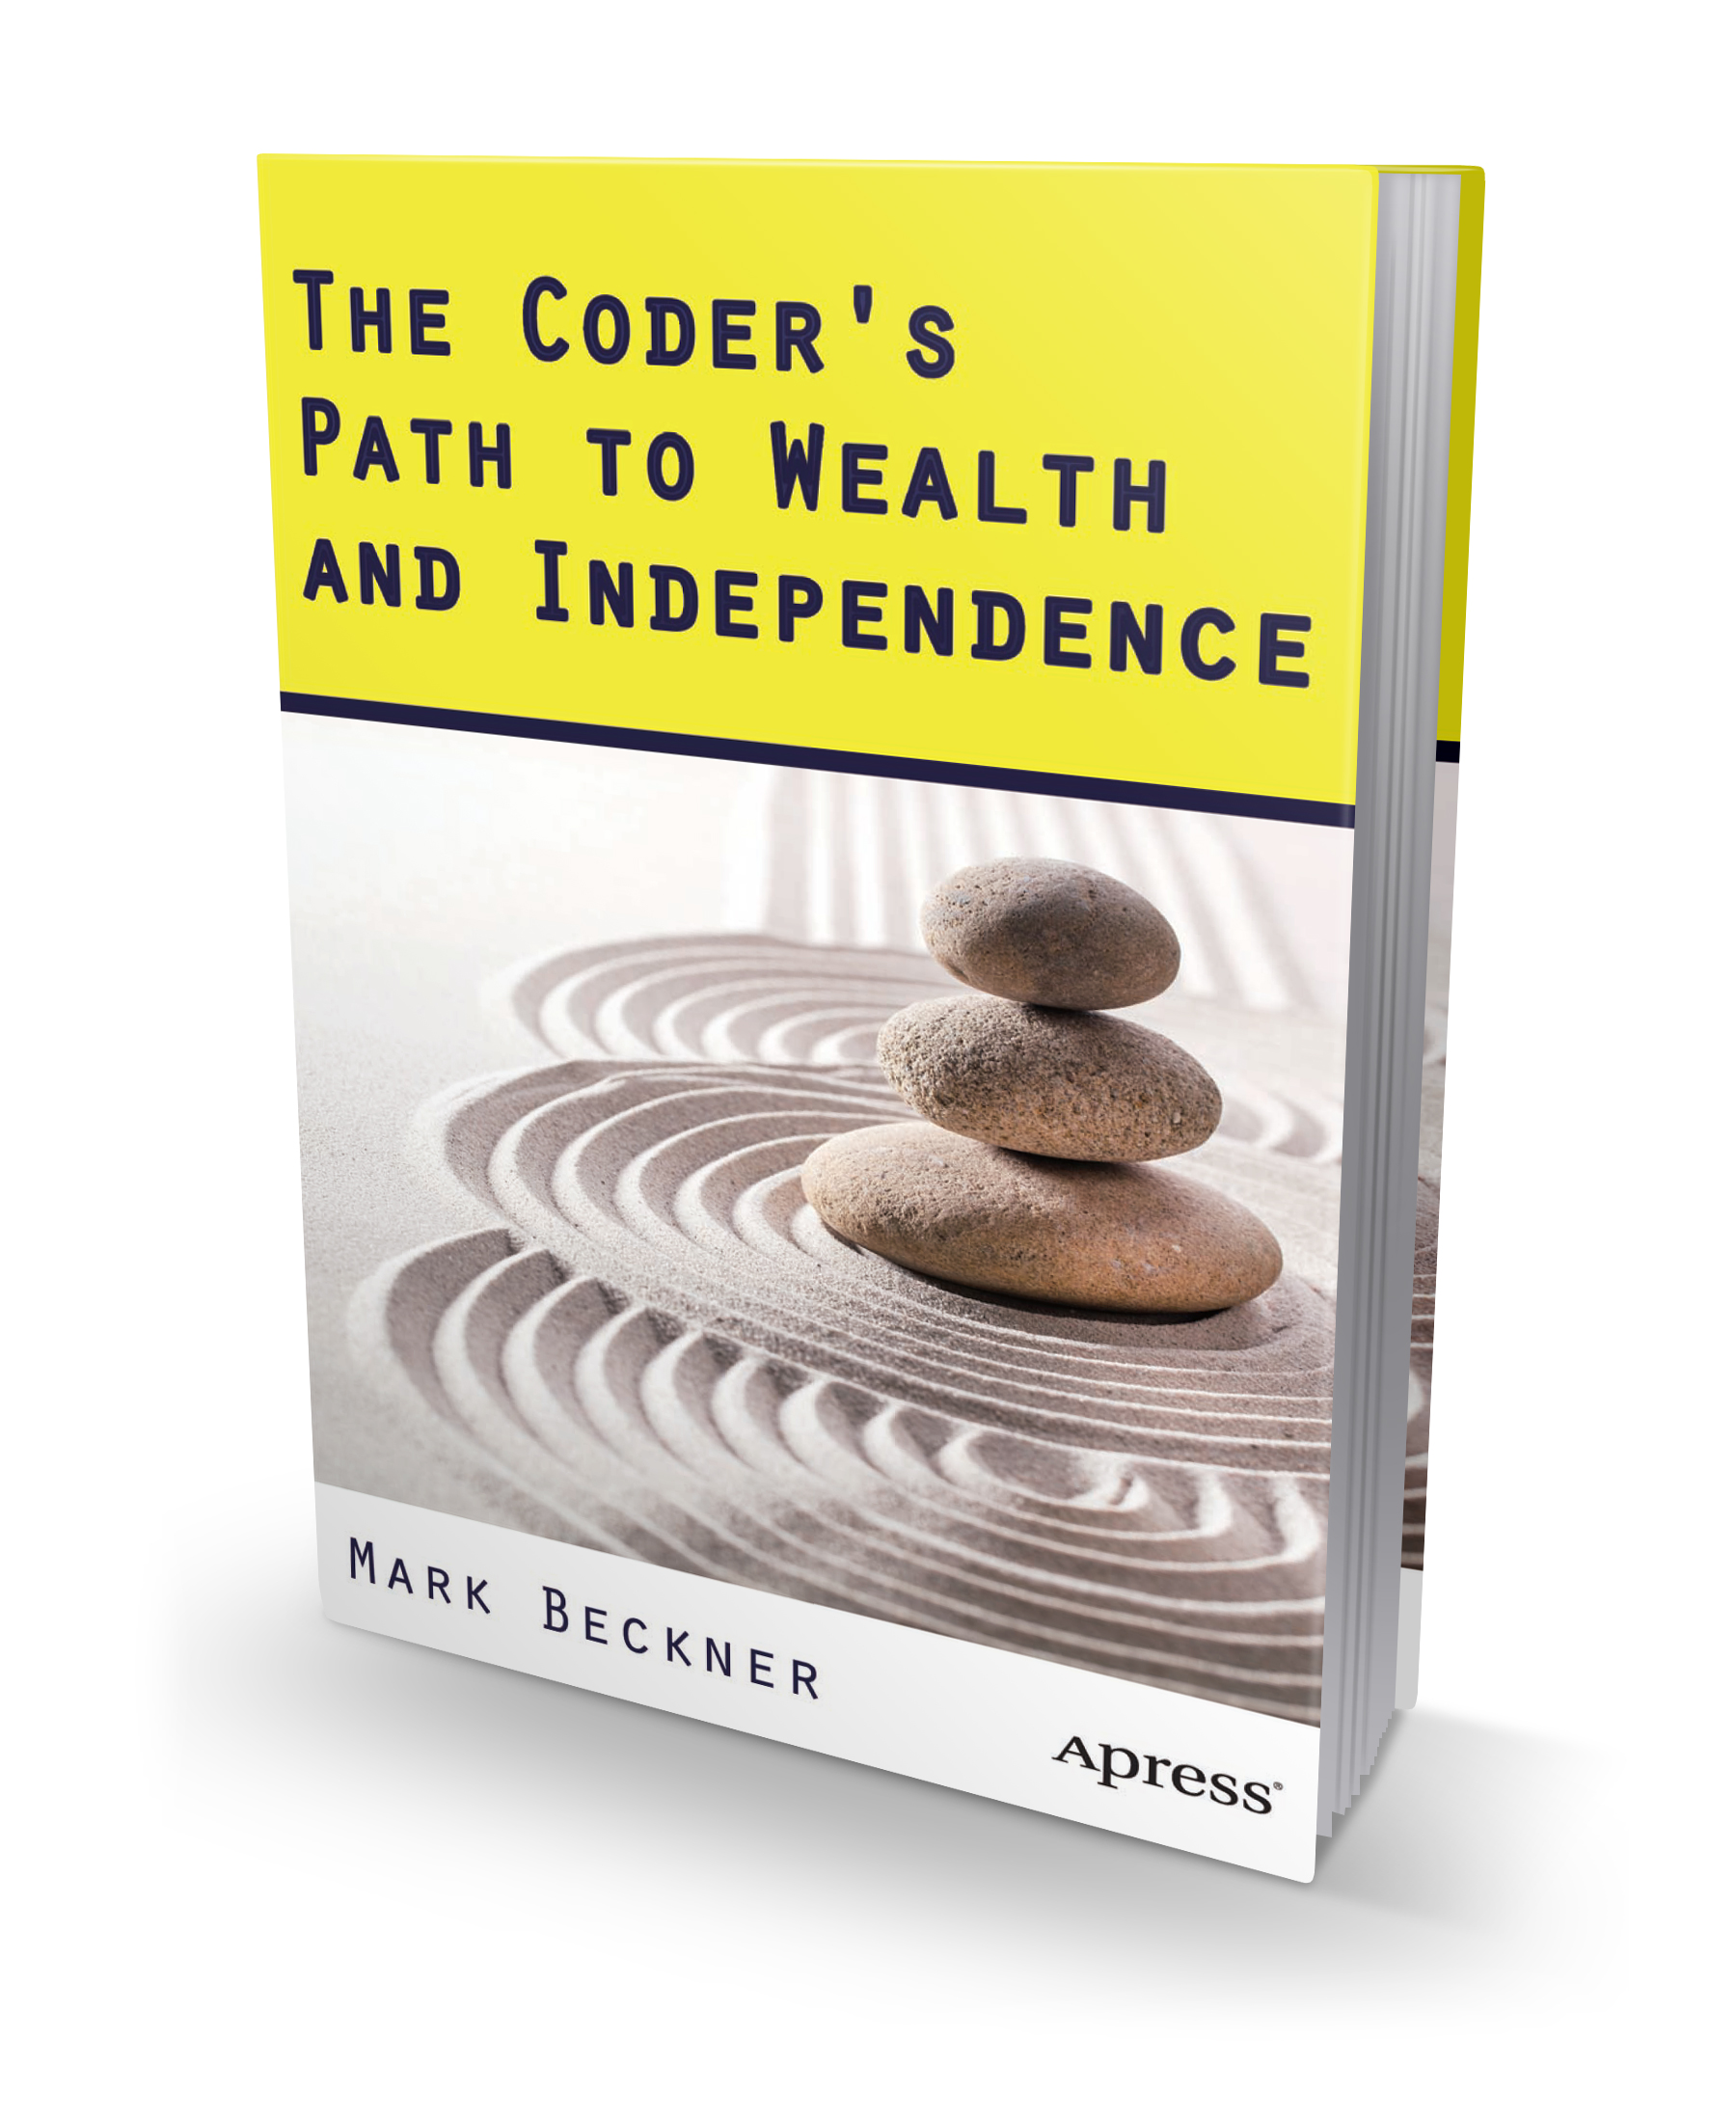 The Coder's Guide to Wealth and Independence